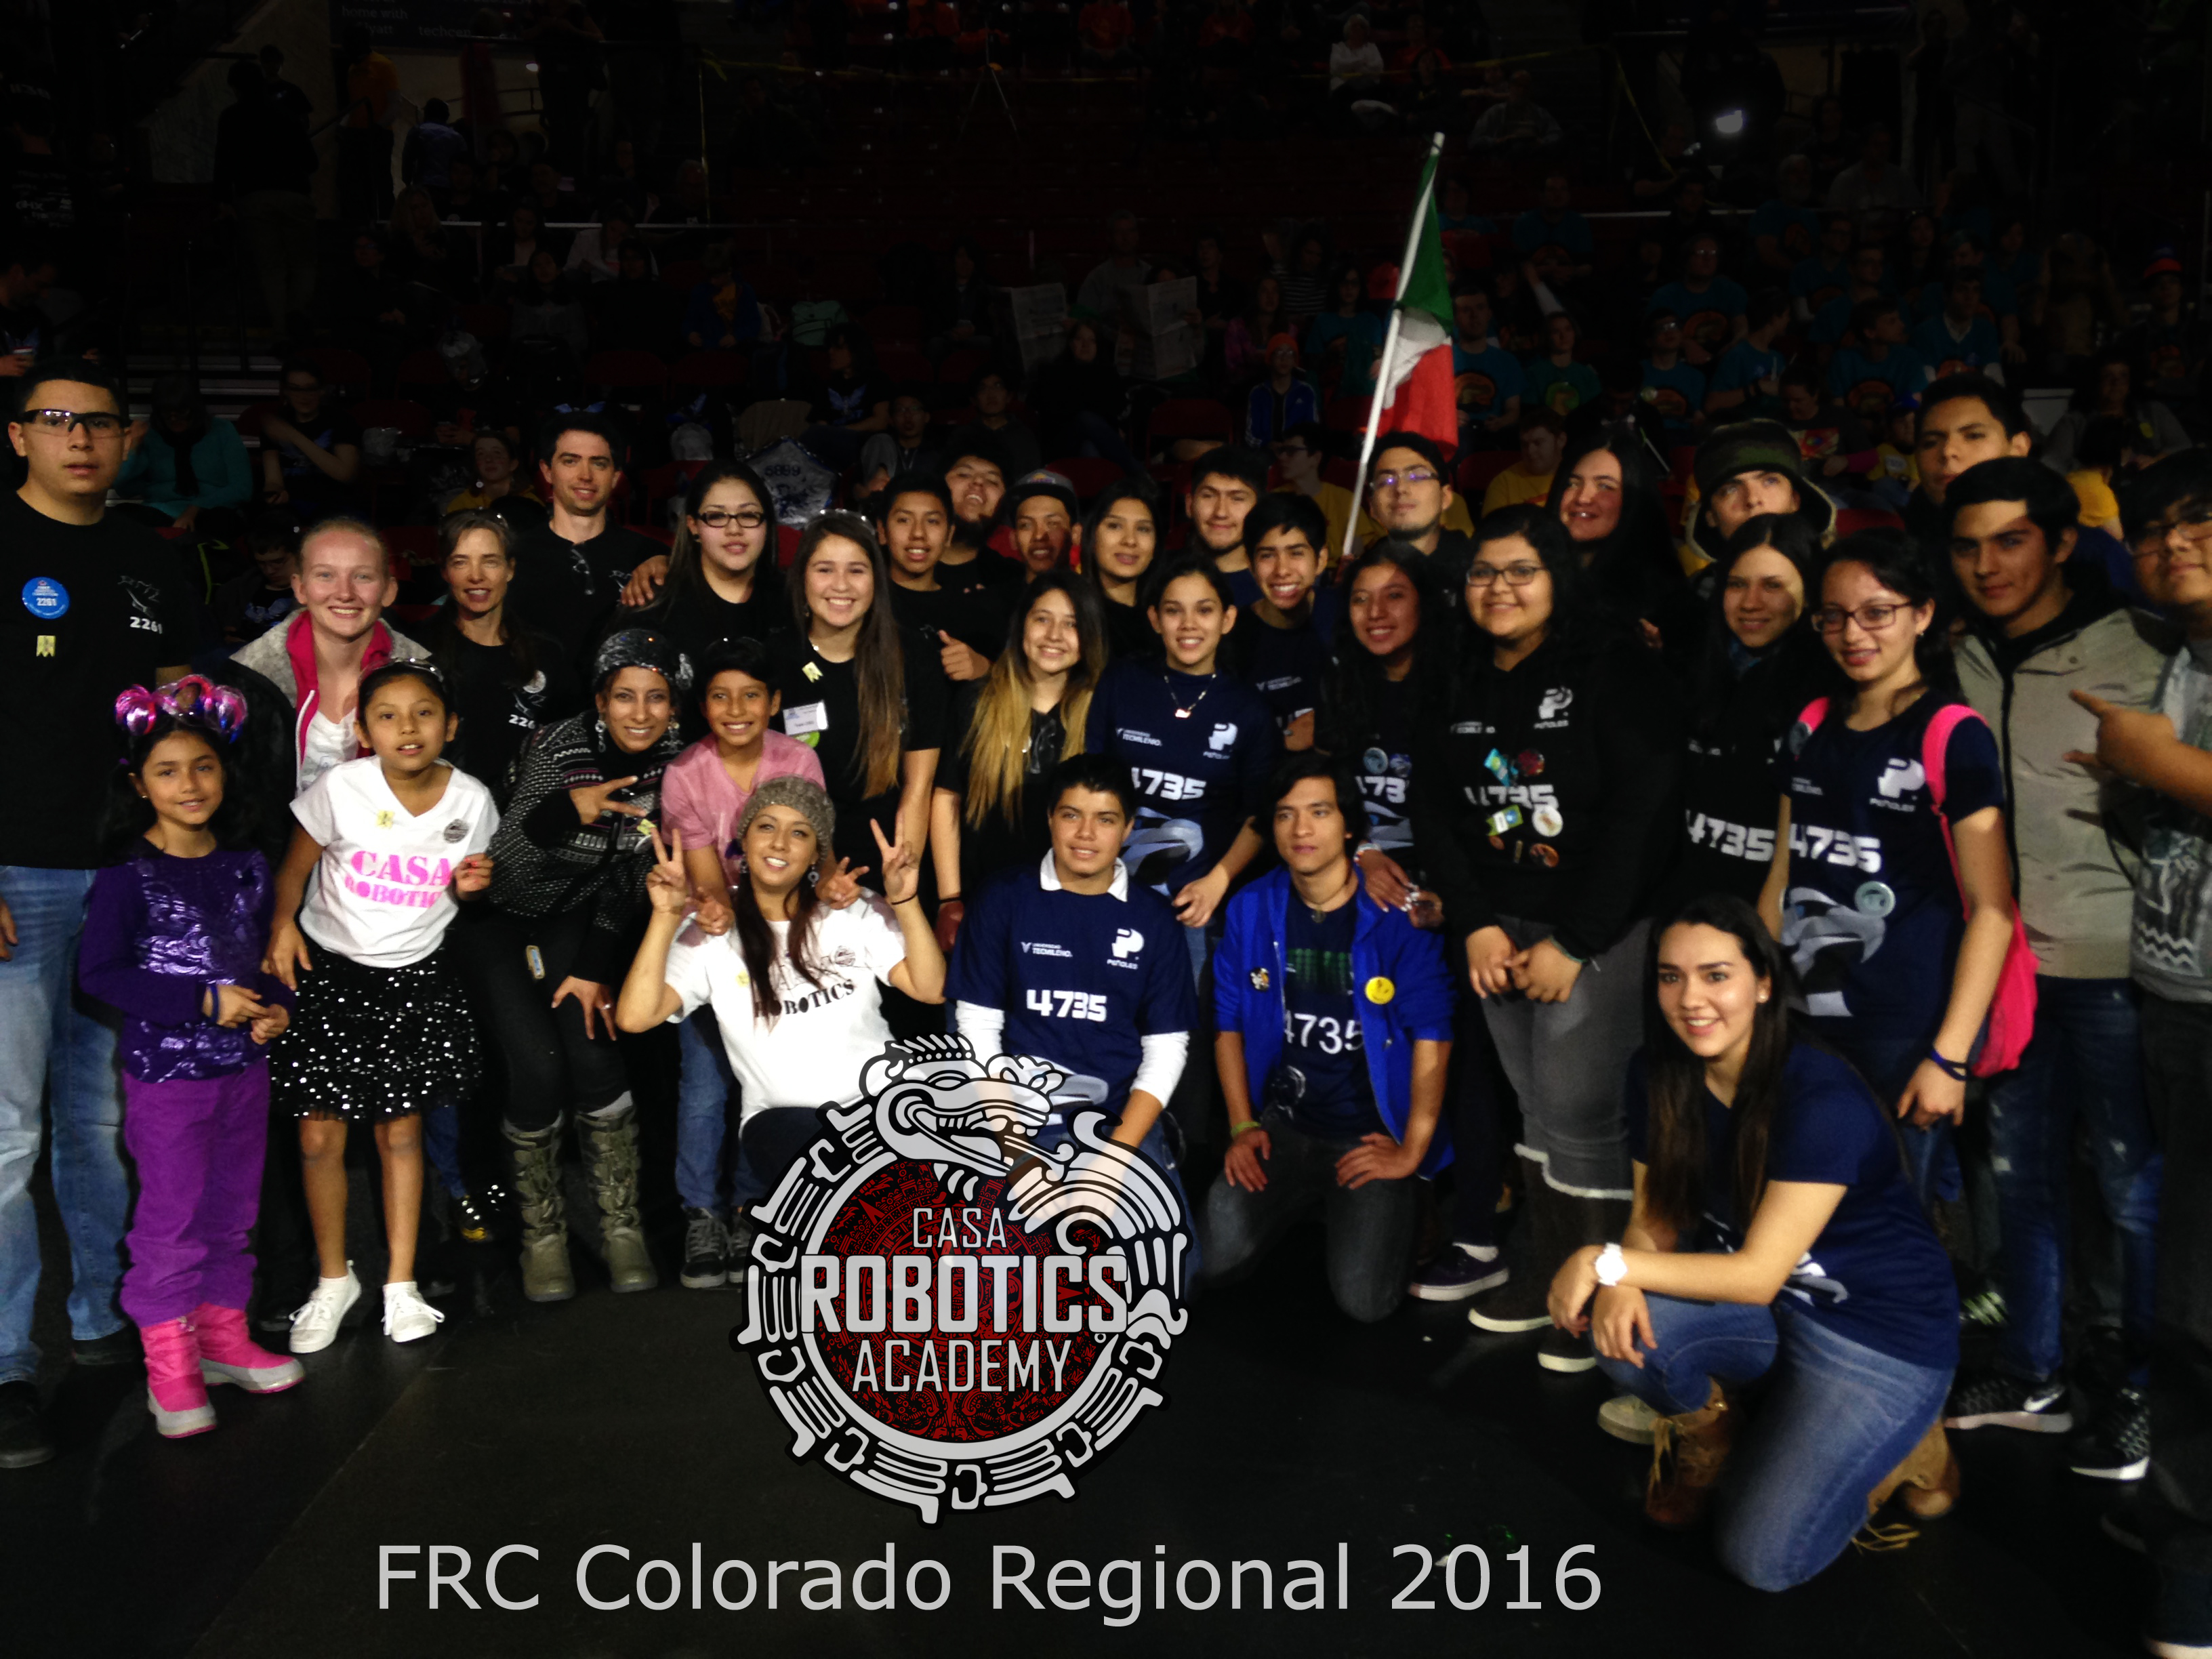 Team Casa Robotics (2261) with Team from Mexico( 4735)